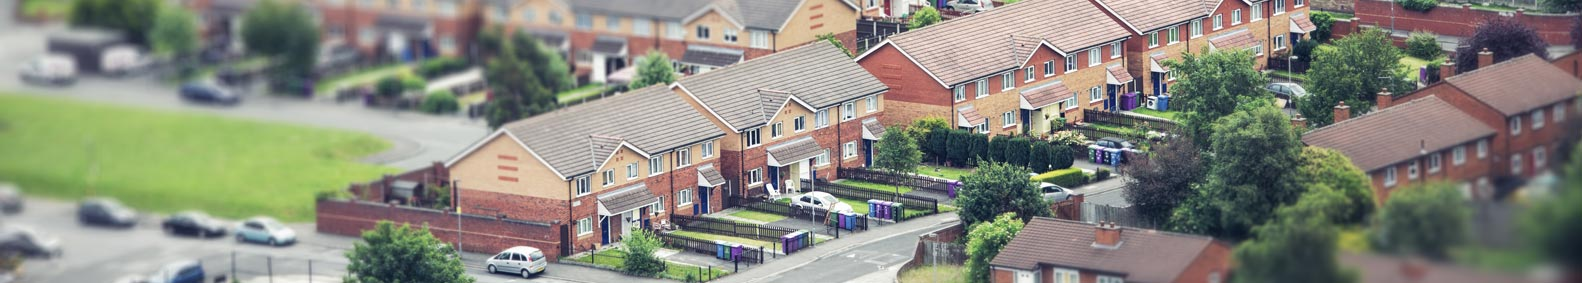 Residential Development Solicitors